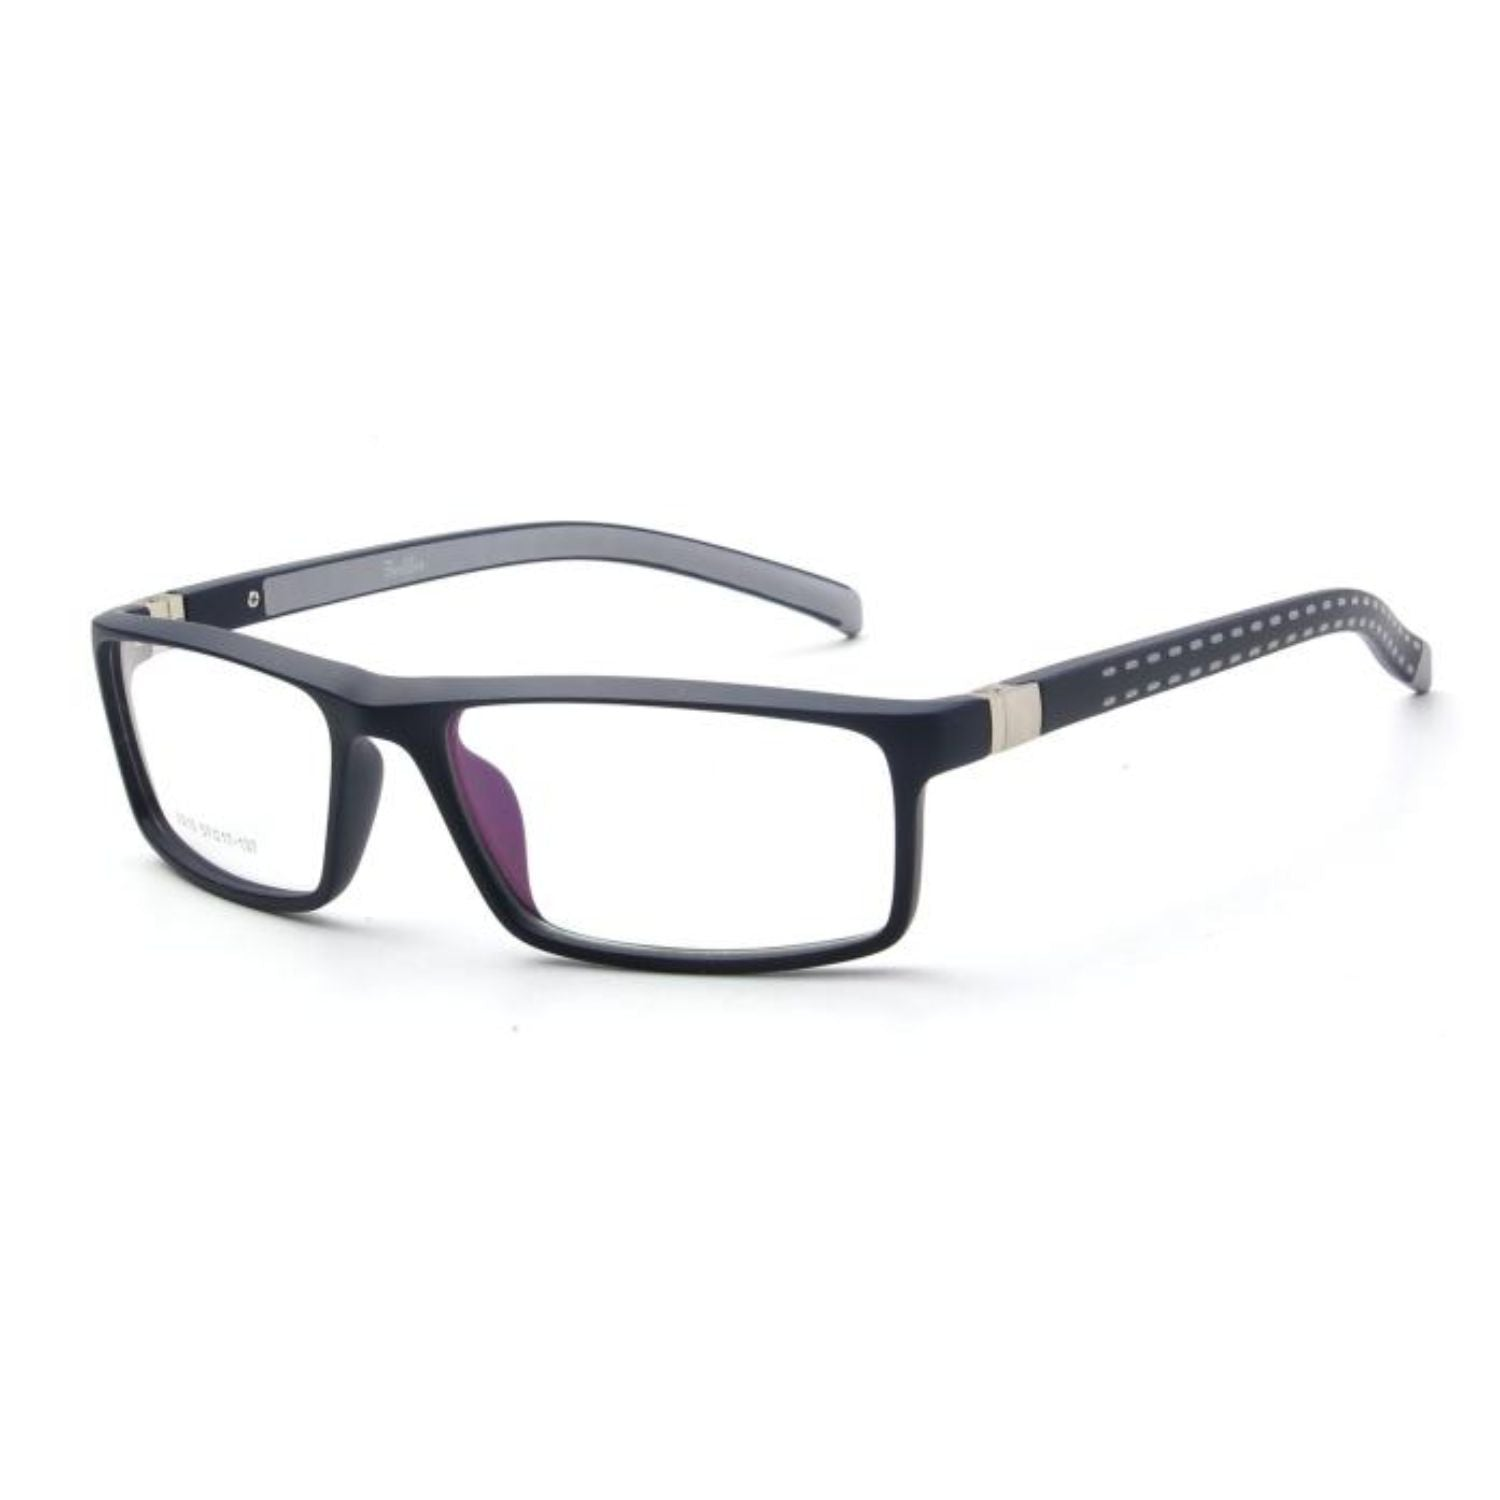 OTR12 - Classic Rectangle Optical Glasses - Iris Fashion Inc. | Wholesale Sunglasses and Glasses